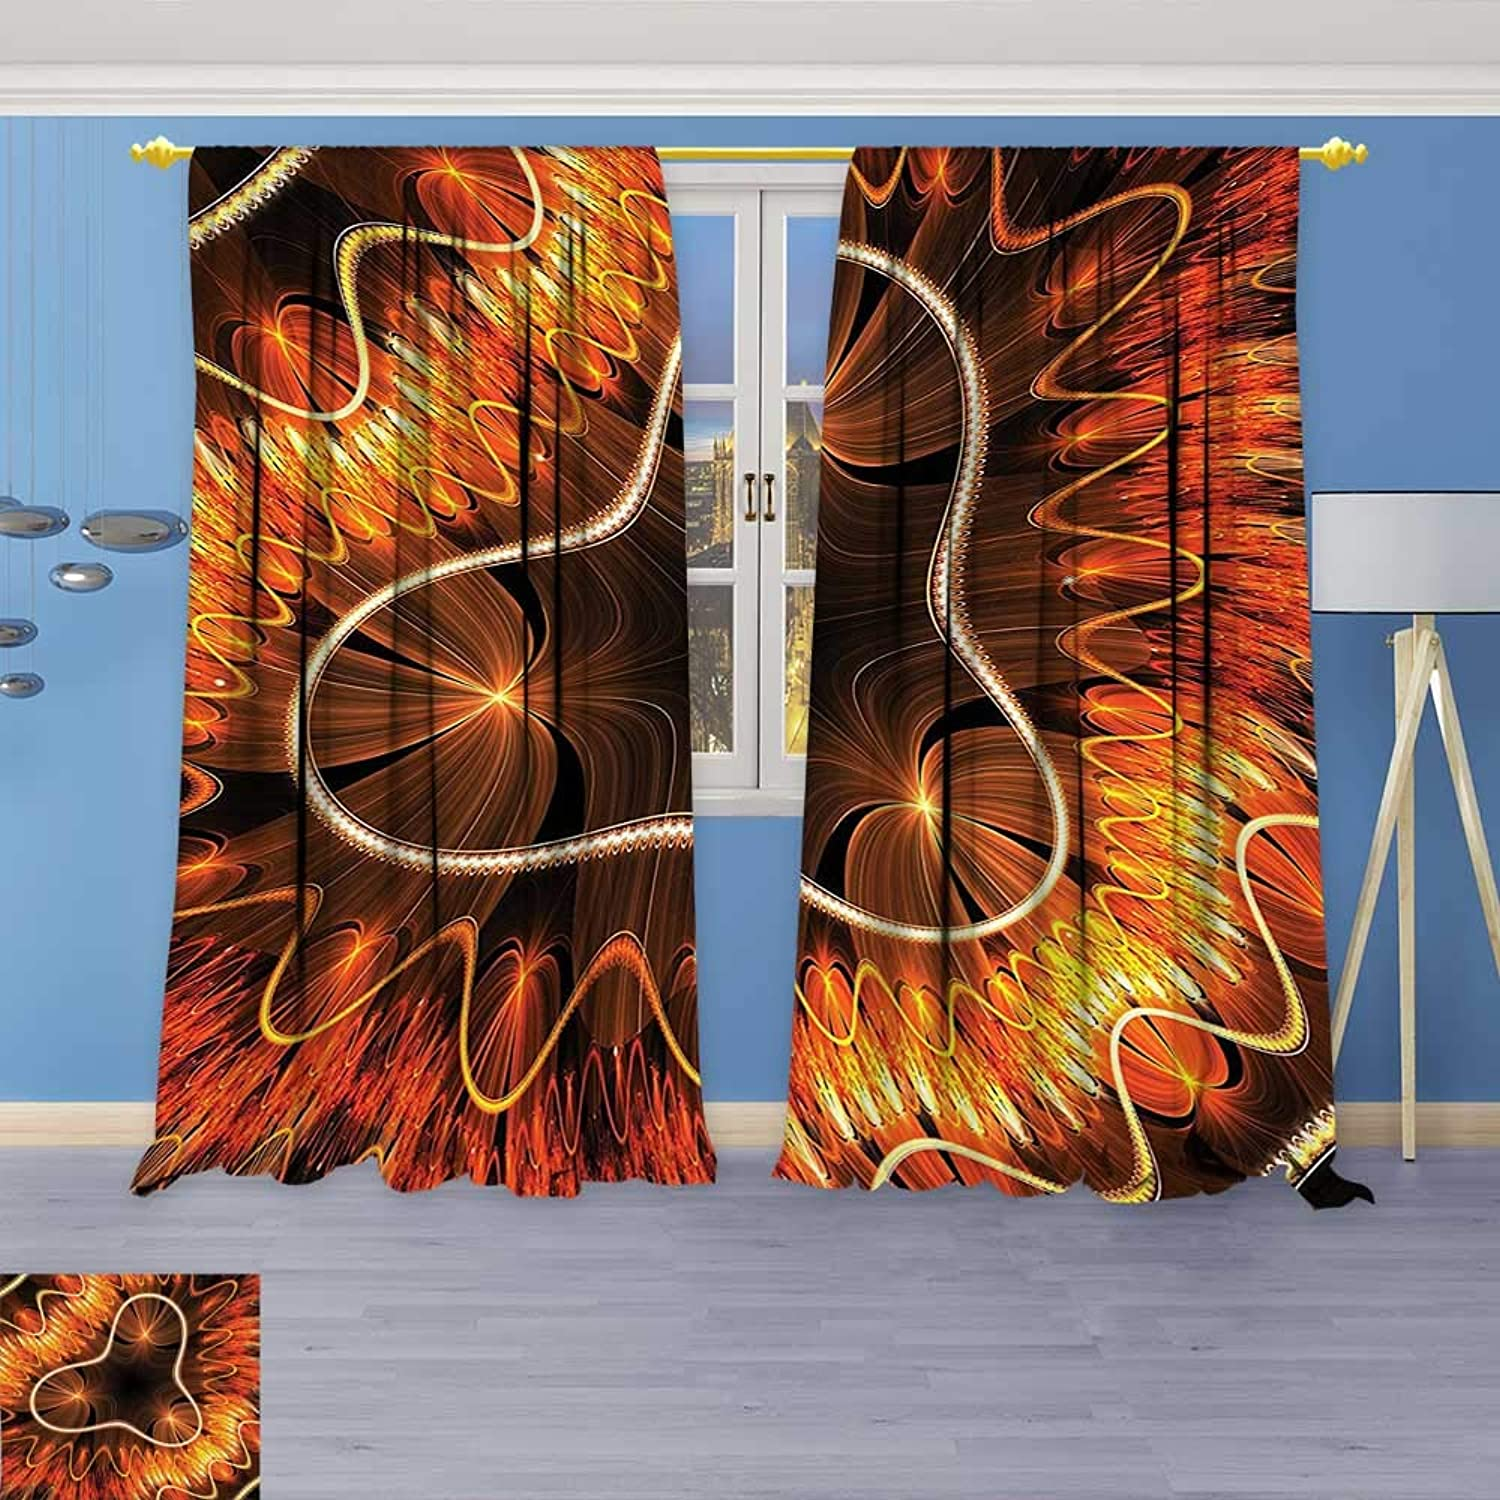 Design Print Thermal Insulated Blackout Curtain Electromagnetic Waves Textured Dynamic Effects Artful Graphic Vermilion Copper for Living Room